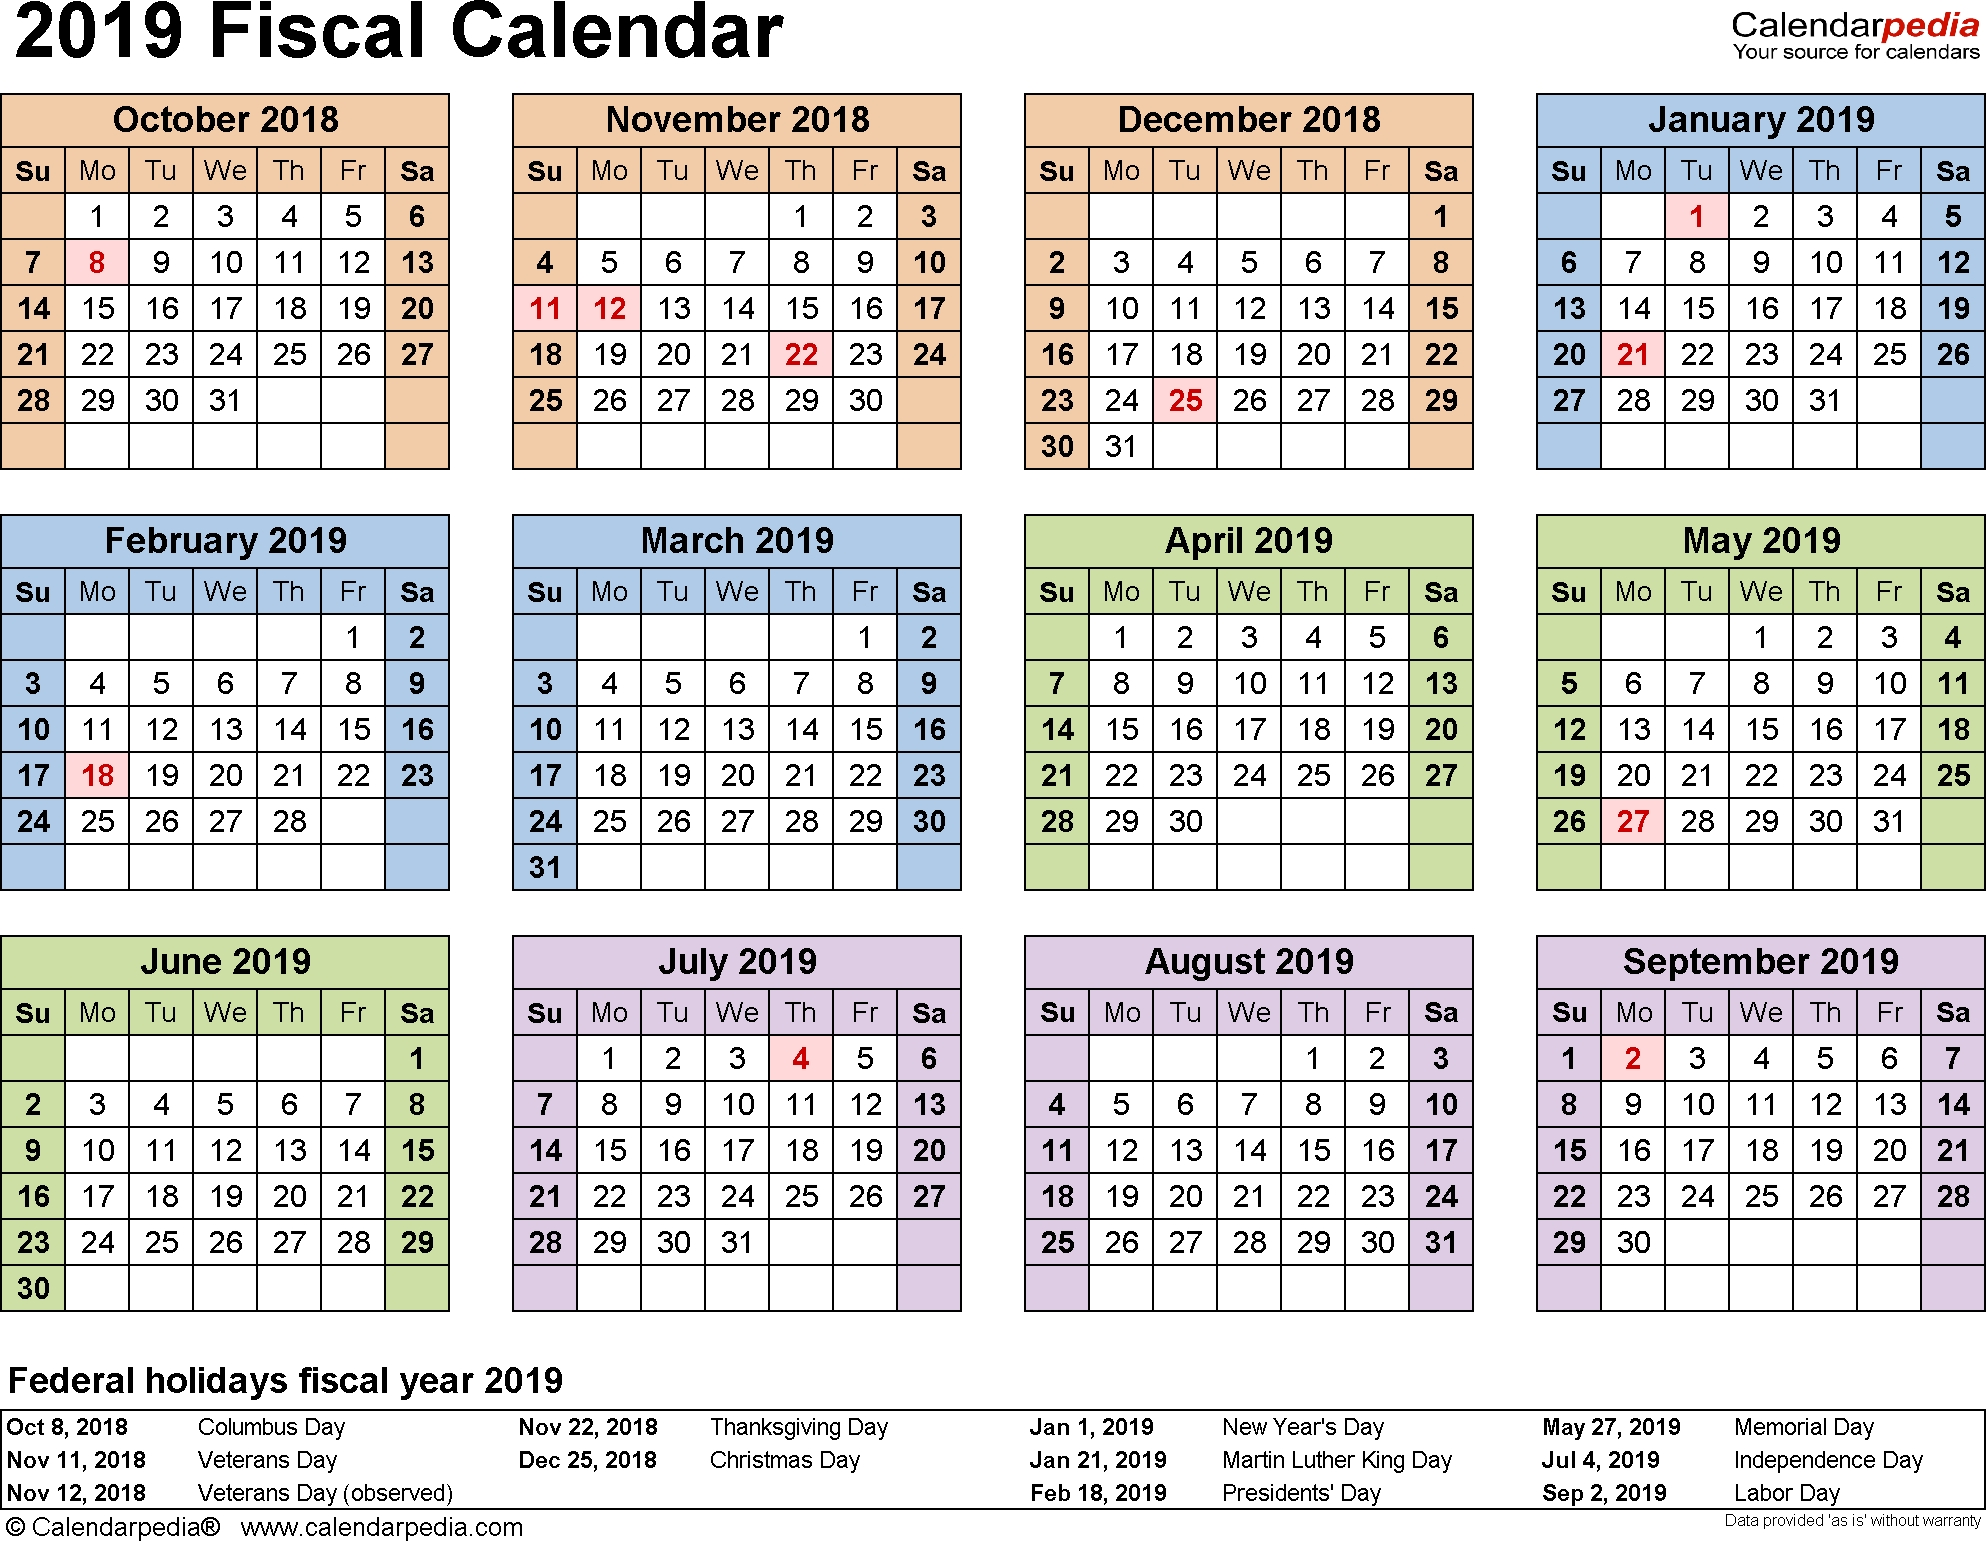 Fiscal Calendars 2019 - Free Printable Word Templates with Financial Year Week Numbers 2019